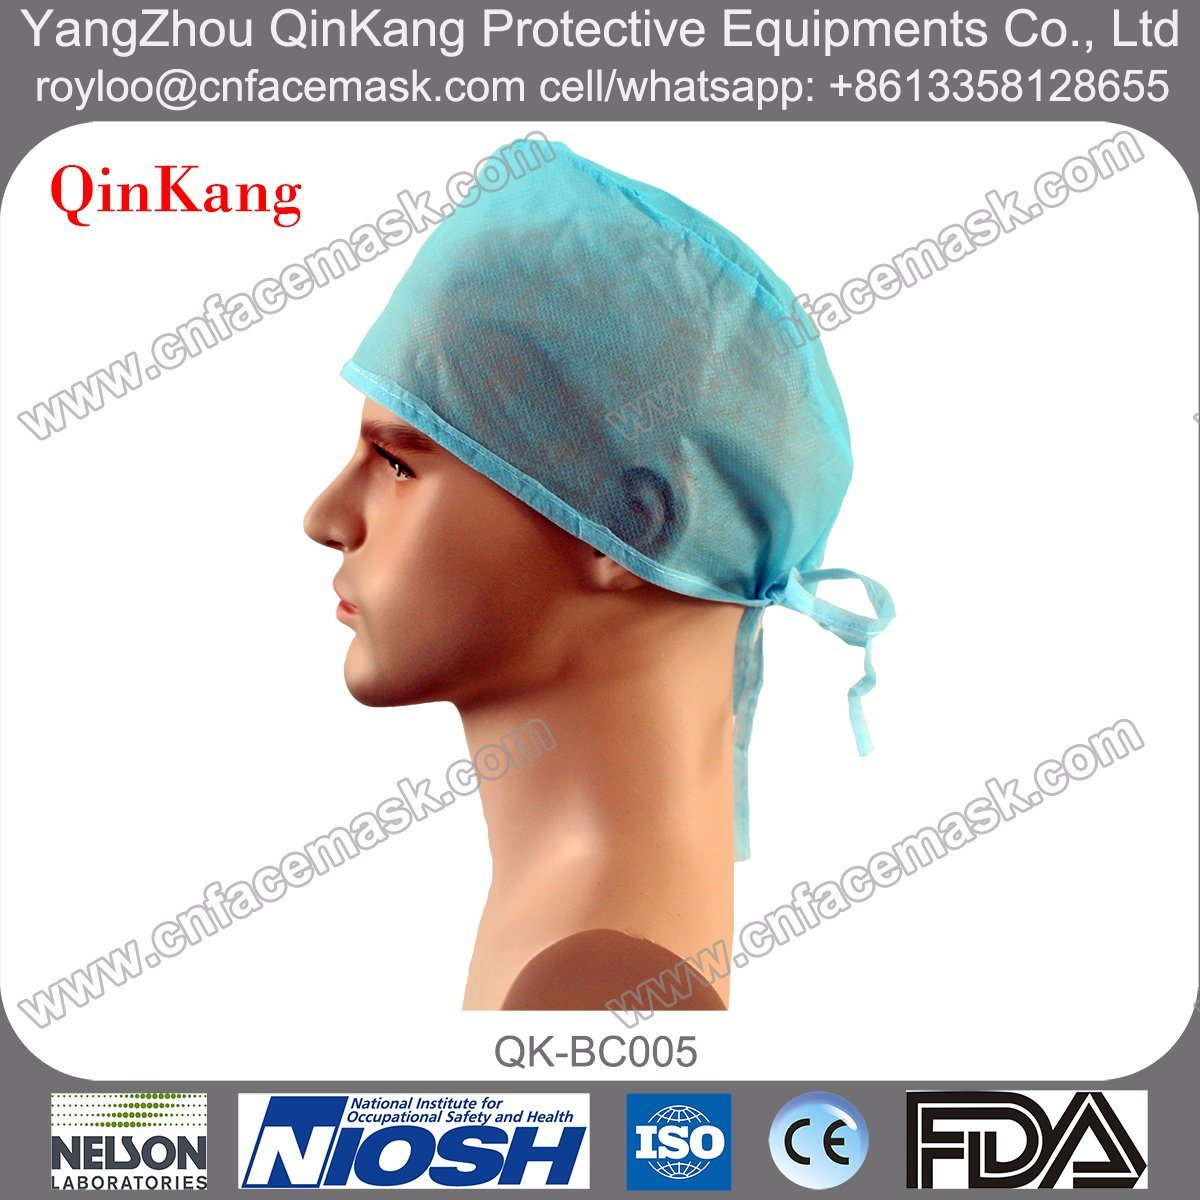 Surgical Doctor Cap, Medical Cap, Disposable Cap with Ties